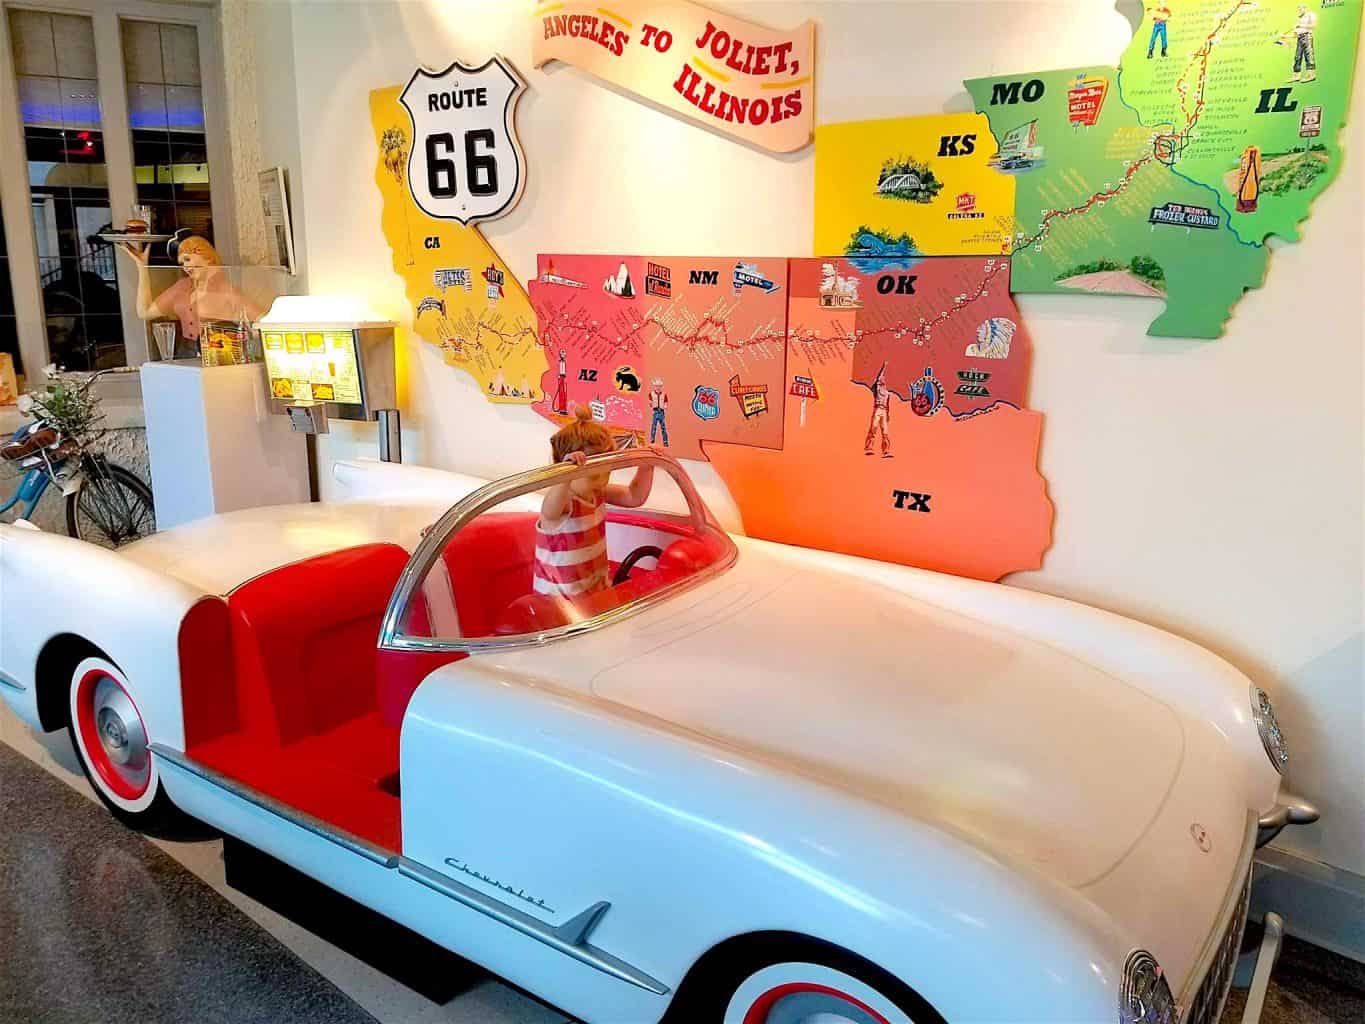 vintage white car next to Route 66 map in Joliet